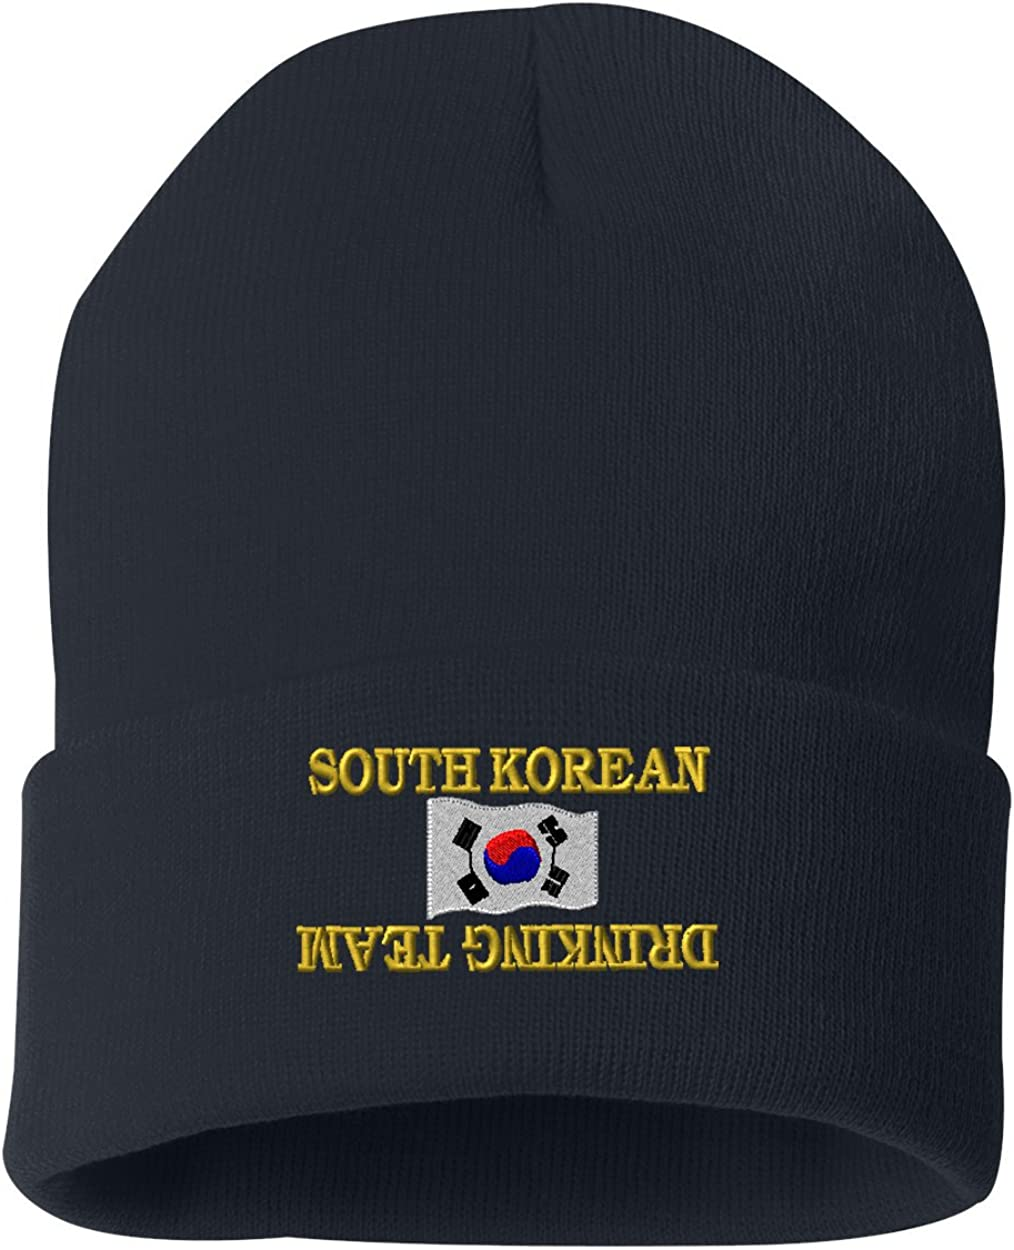 SOUTH KOREAN DRINKING TEAM Custom Personalized Embroidery Embroidered Beanie